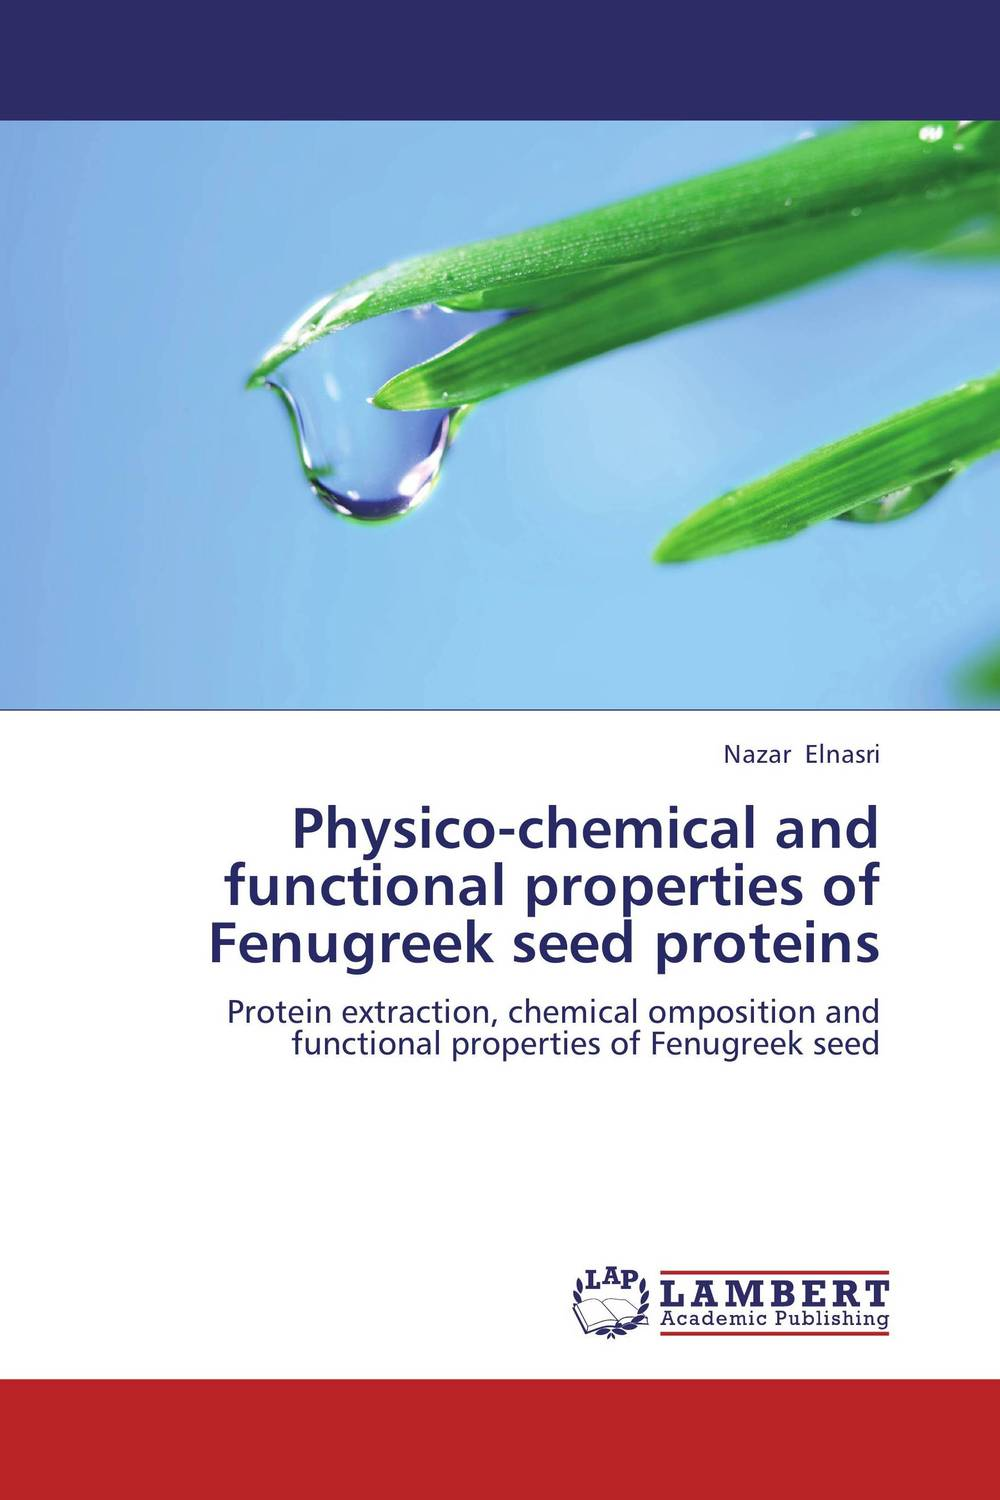 Physico-chemical and functional properties of Fenugreek seed proteins